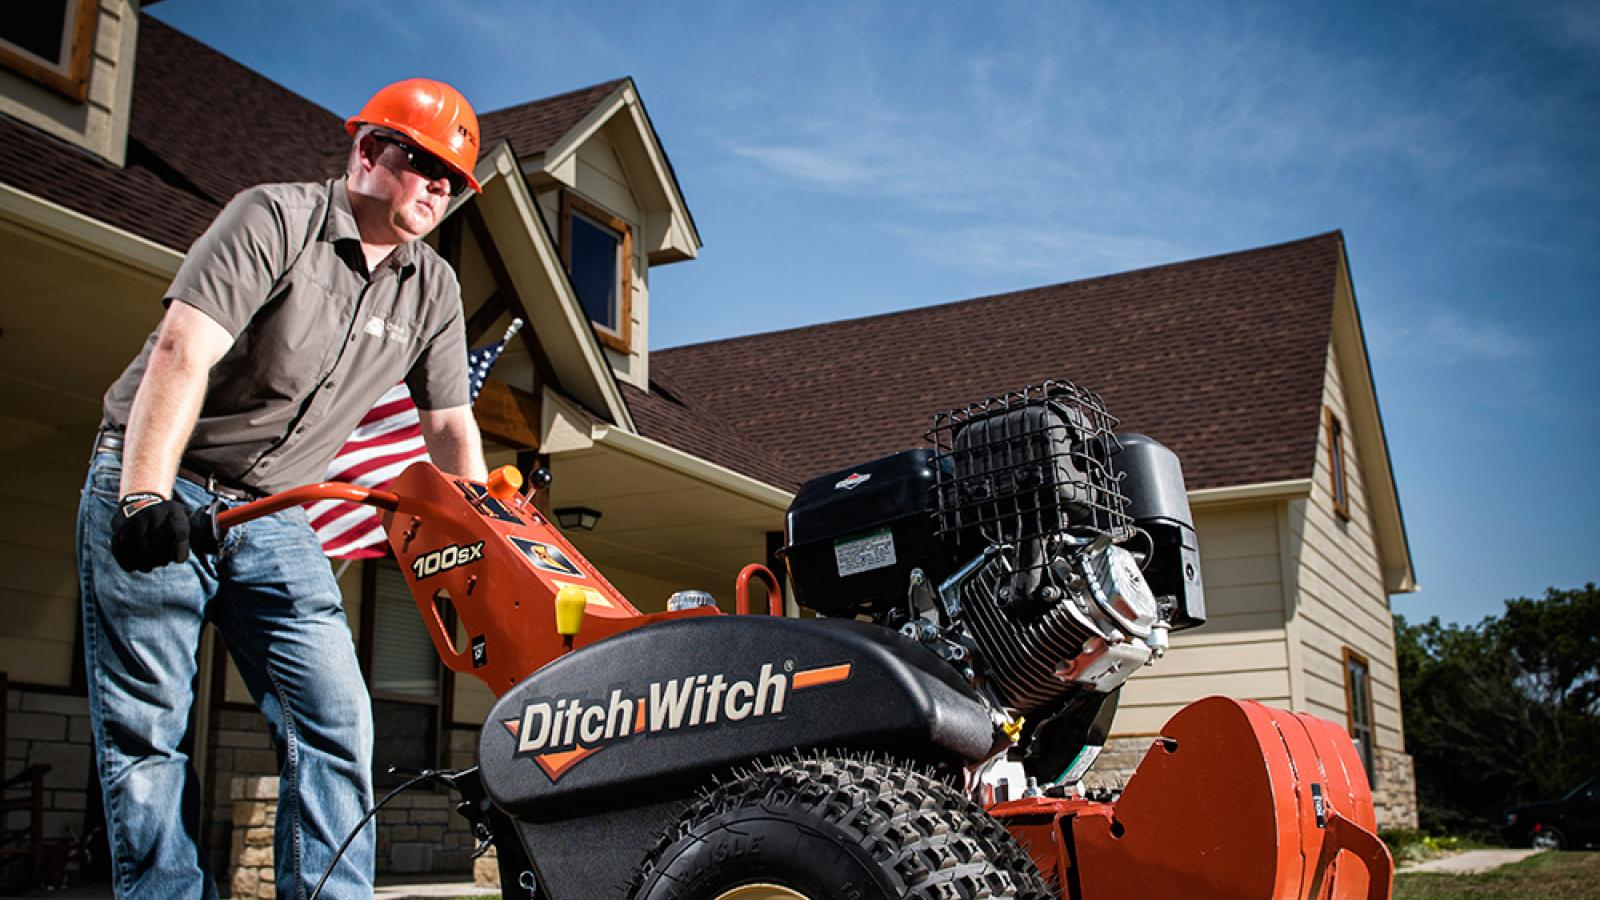 Ditch Witch 100SX Vibratory Plow